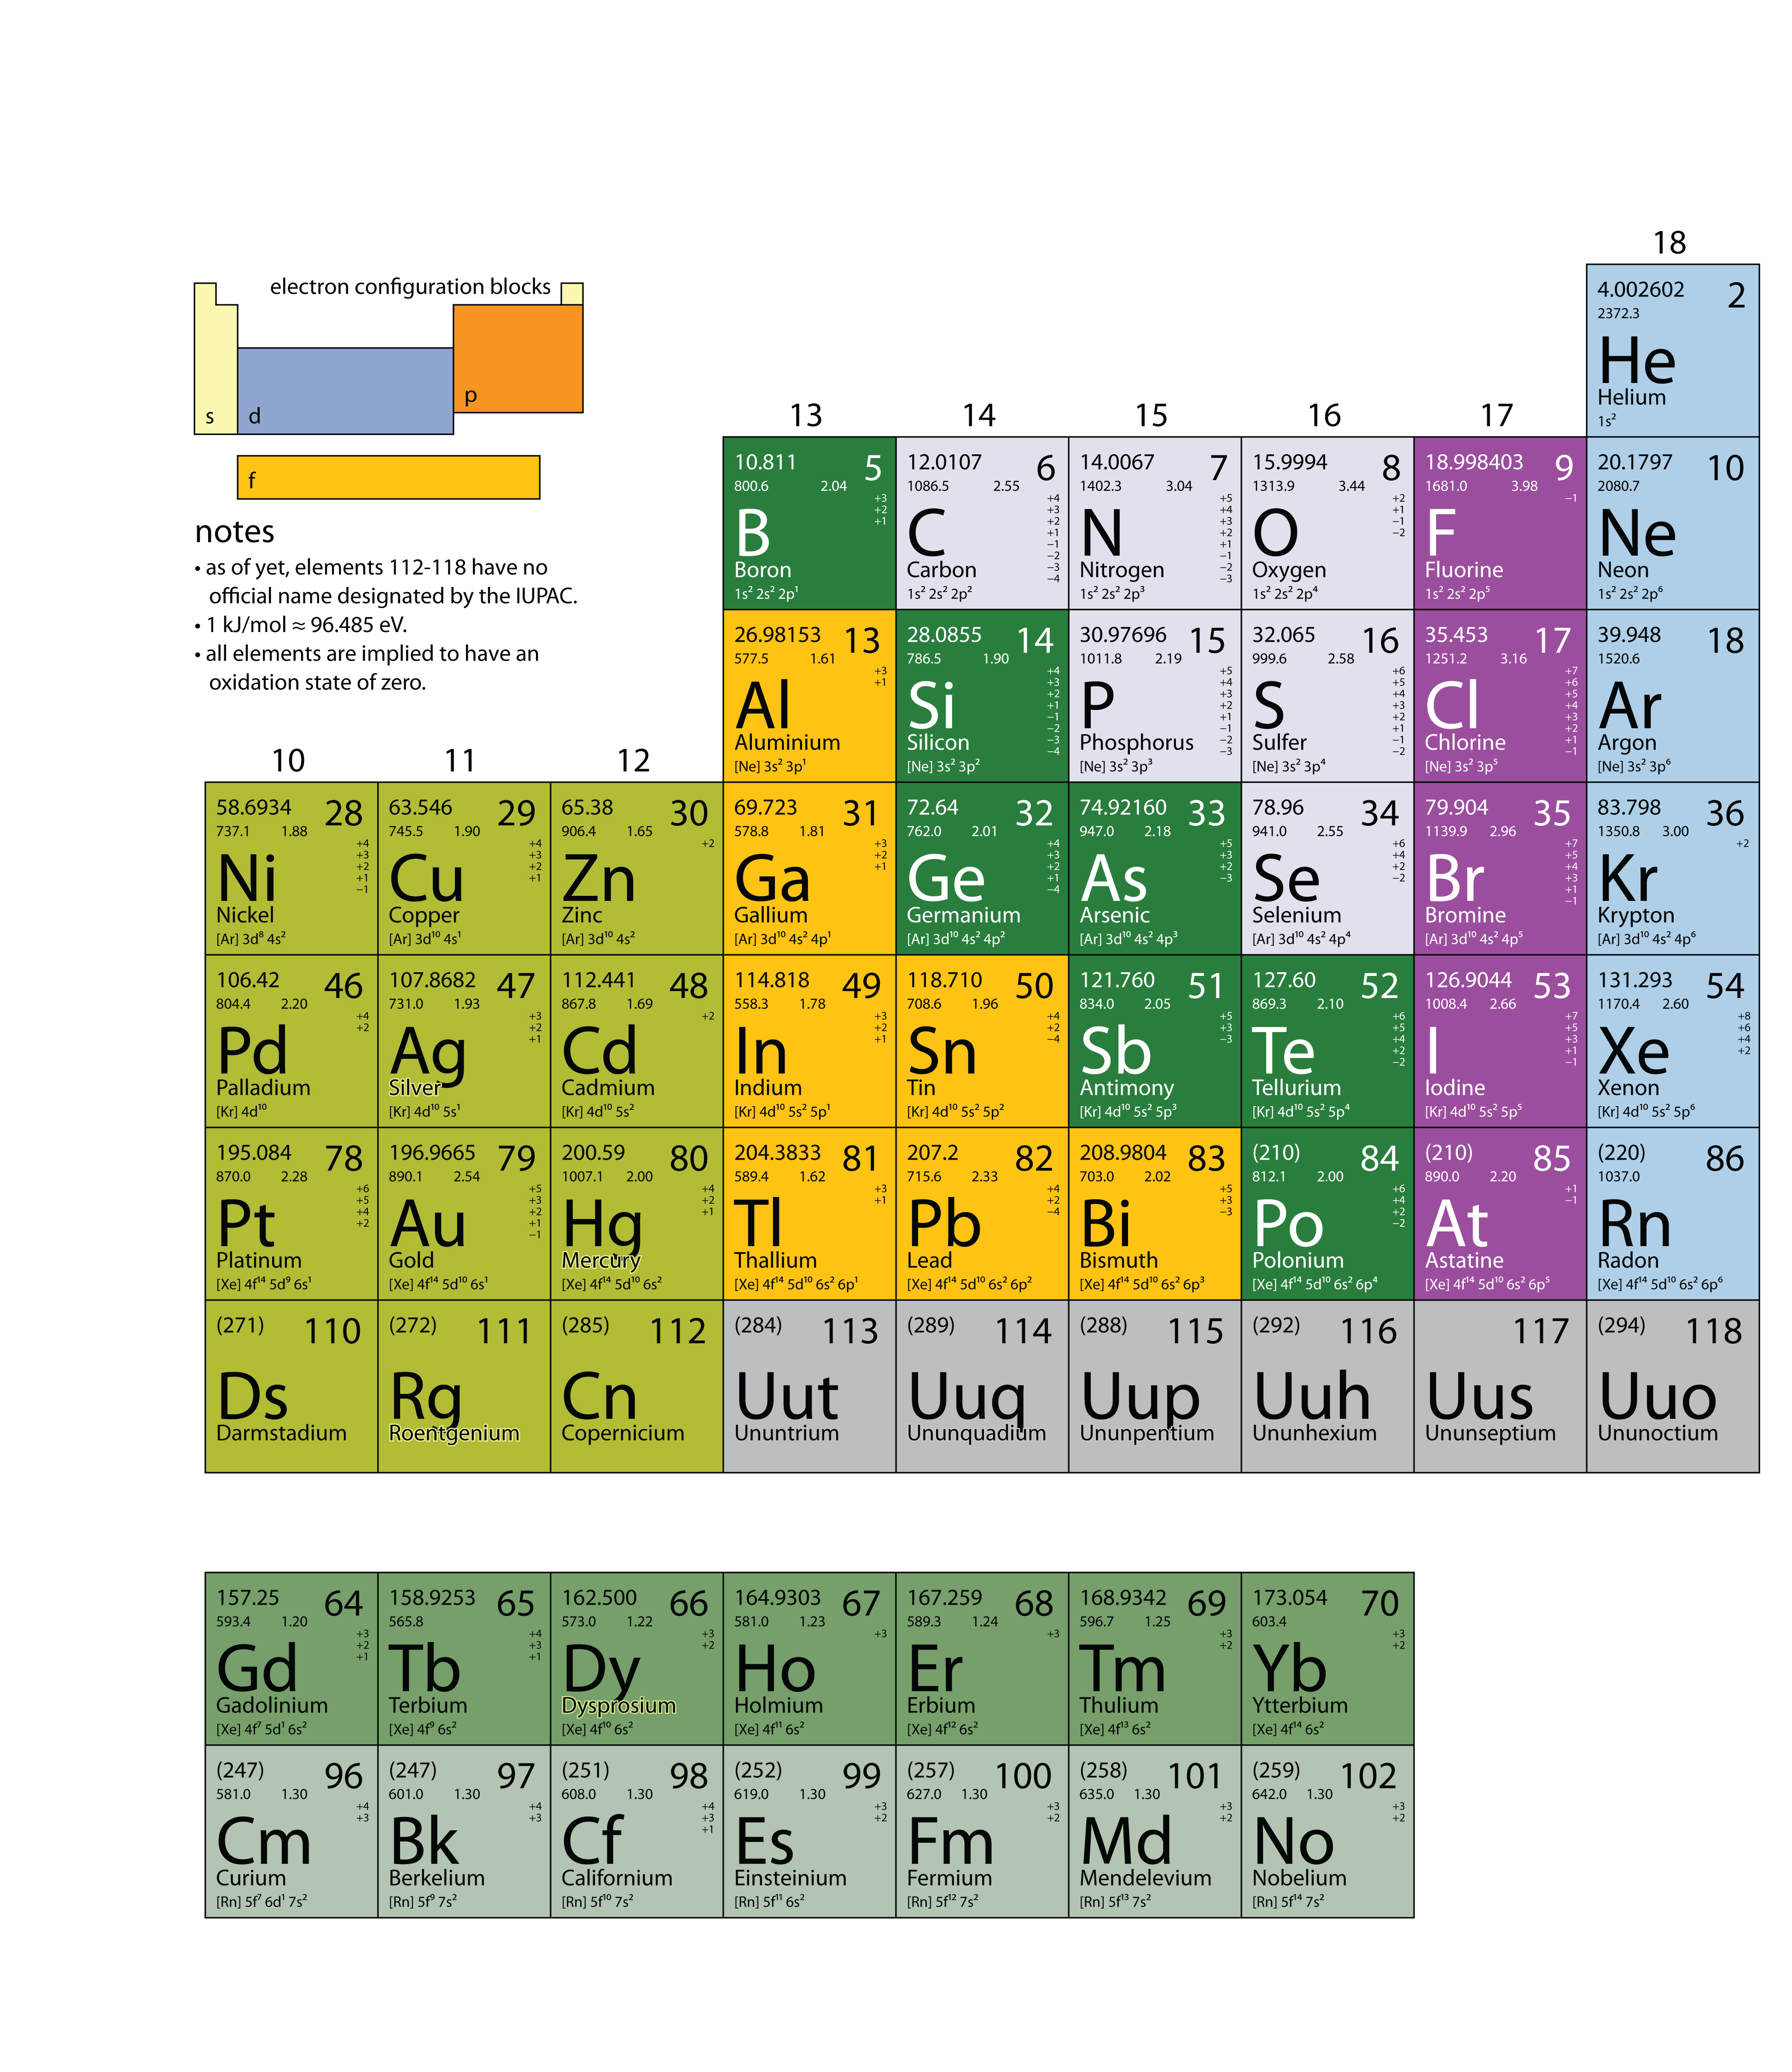 Appendix periodic table of the elements chapter 21 appendix periodic table of the elements gamestrikefo Images